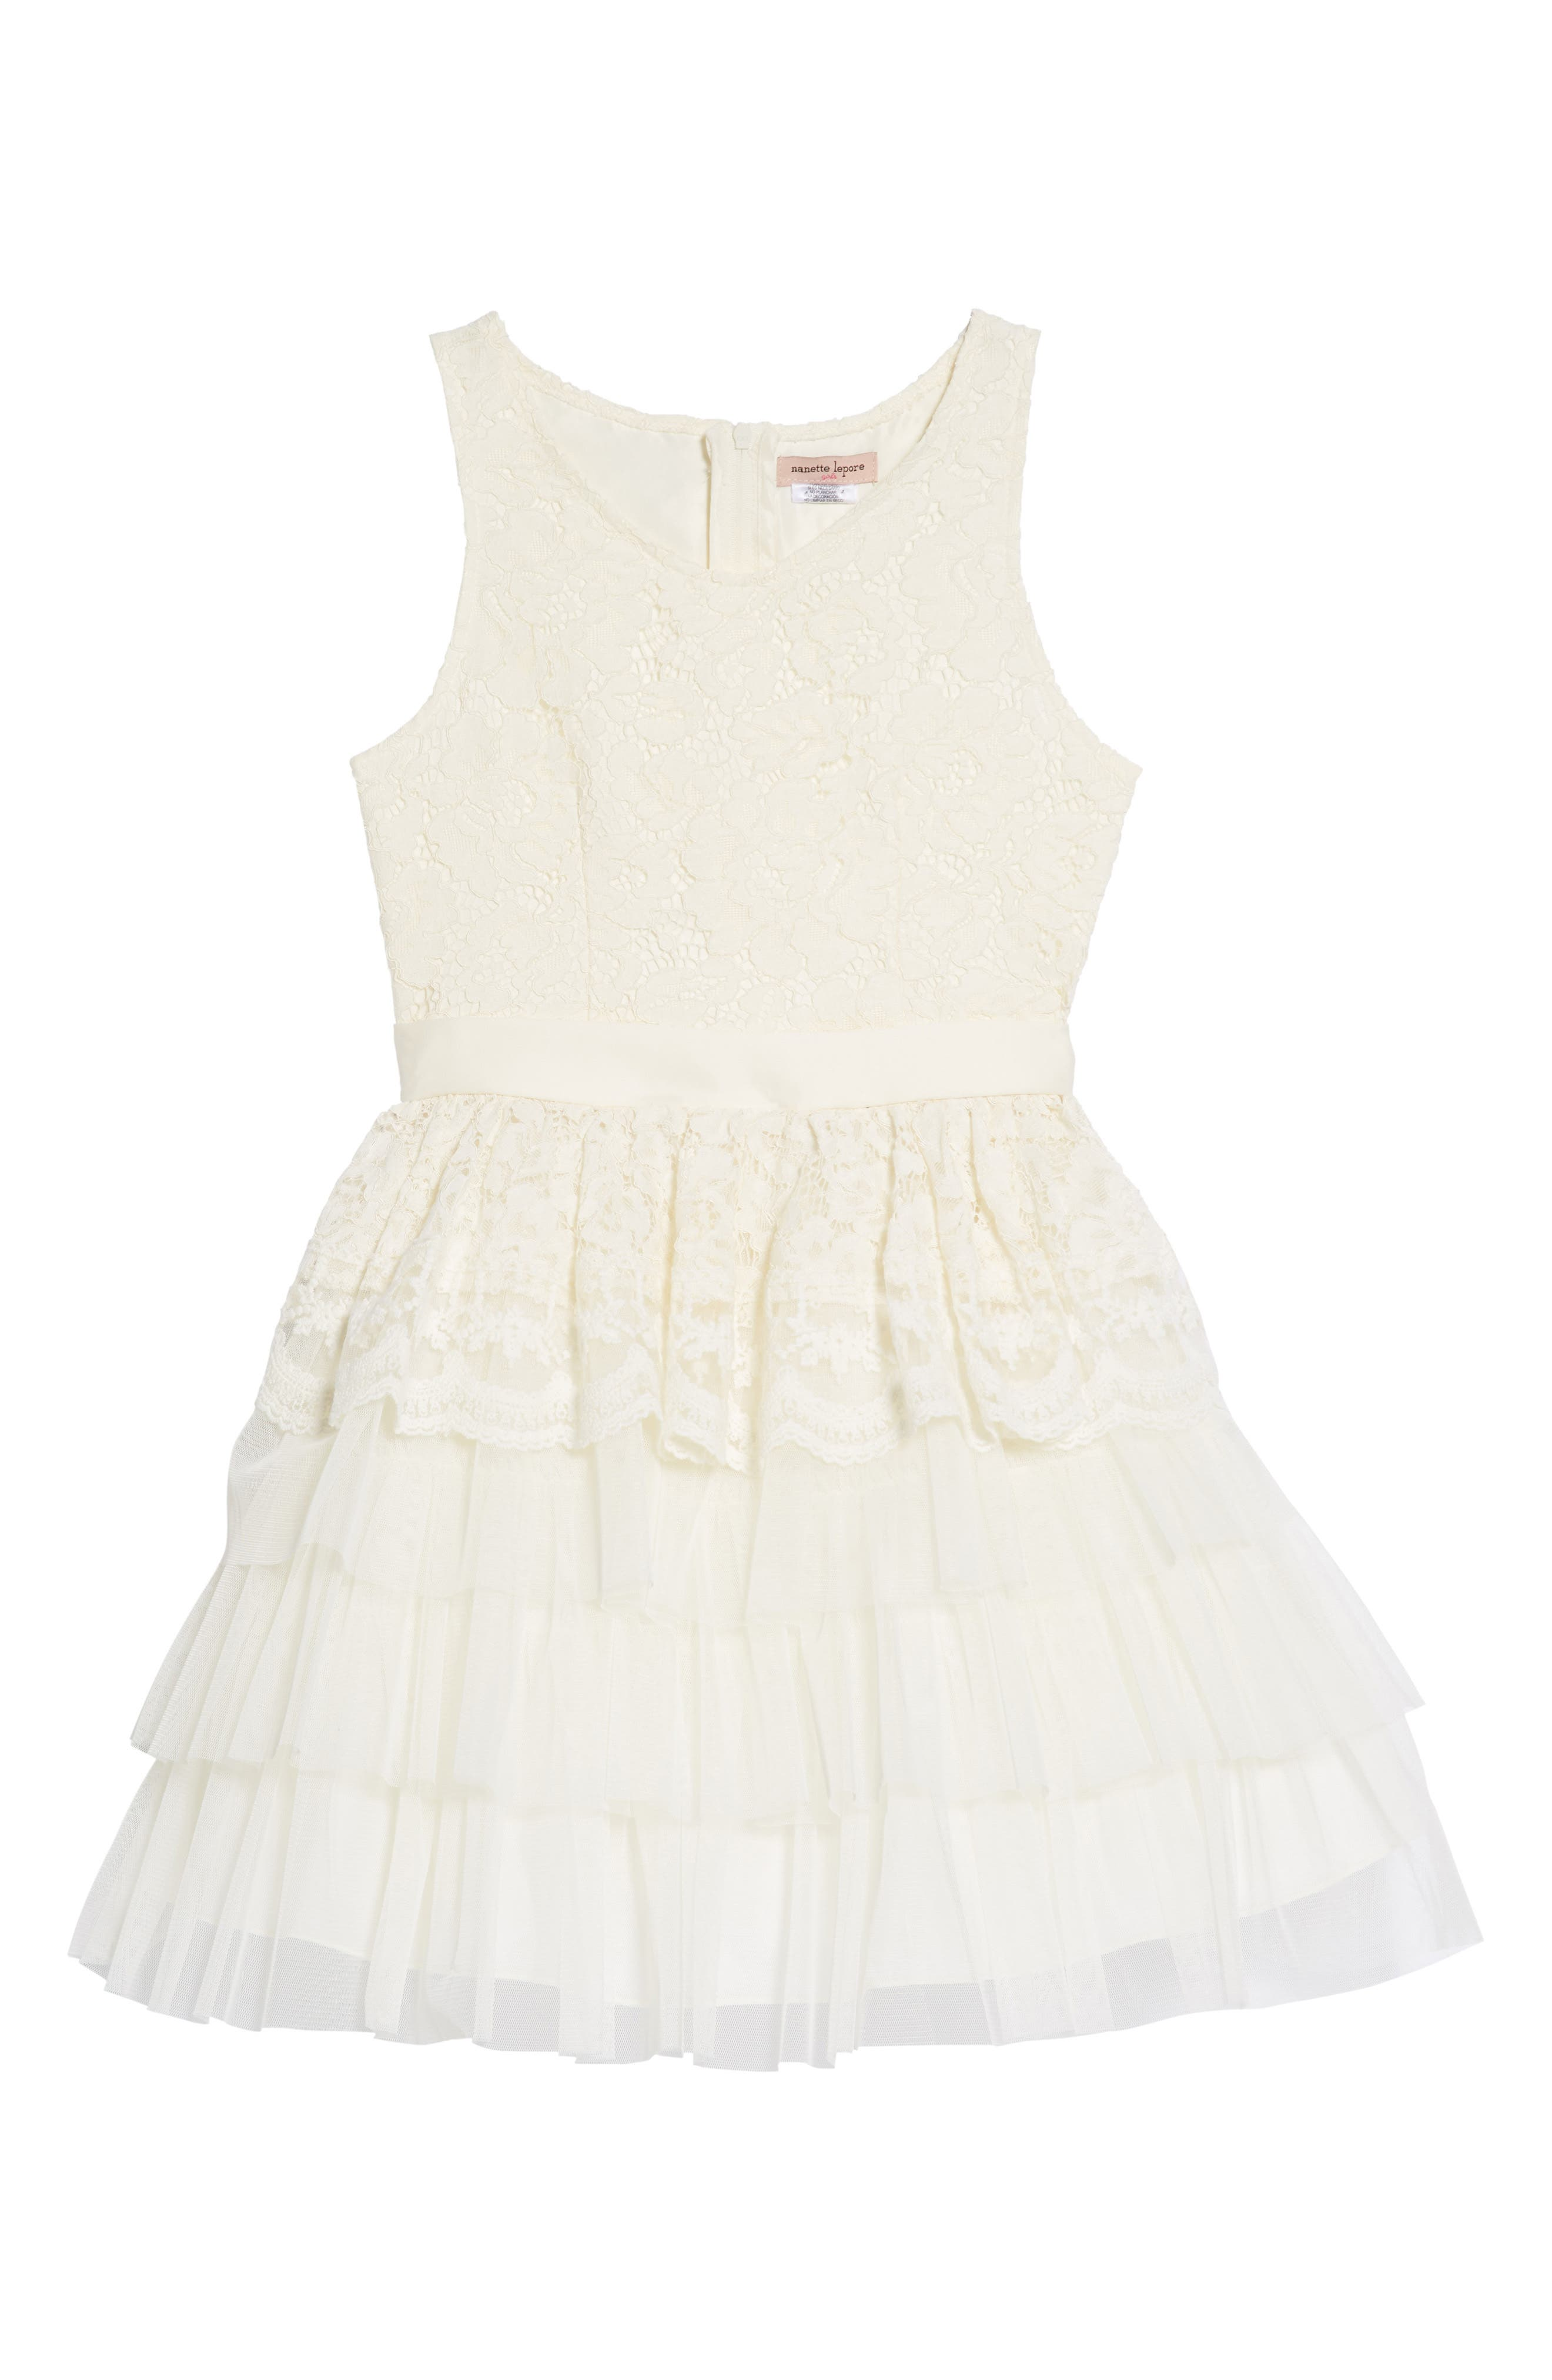 Tiered Lace & Tulle Dress,                             Main thumbnail 1, color,                             900